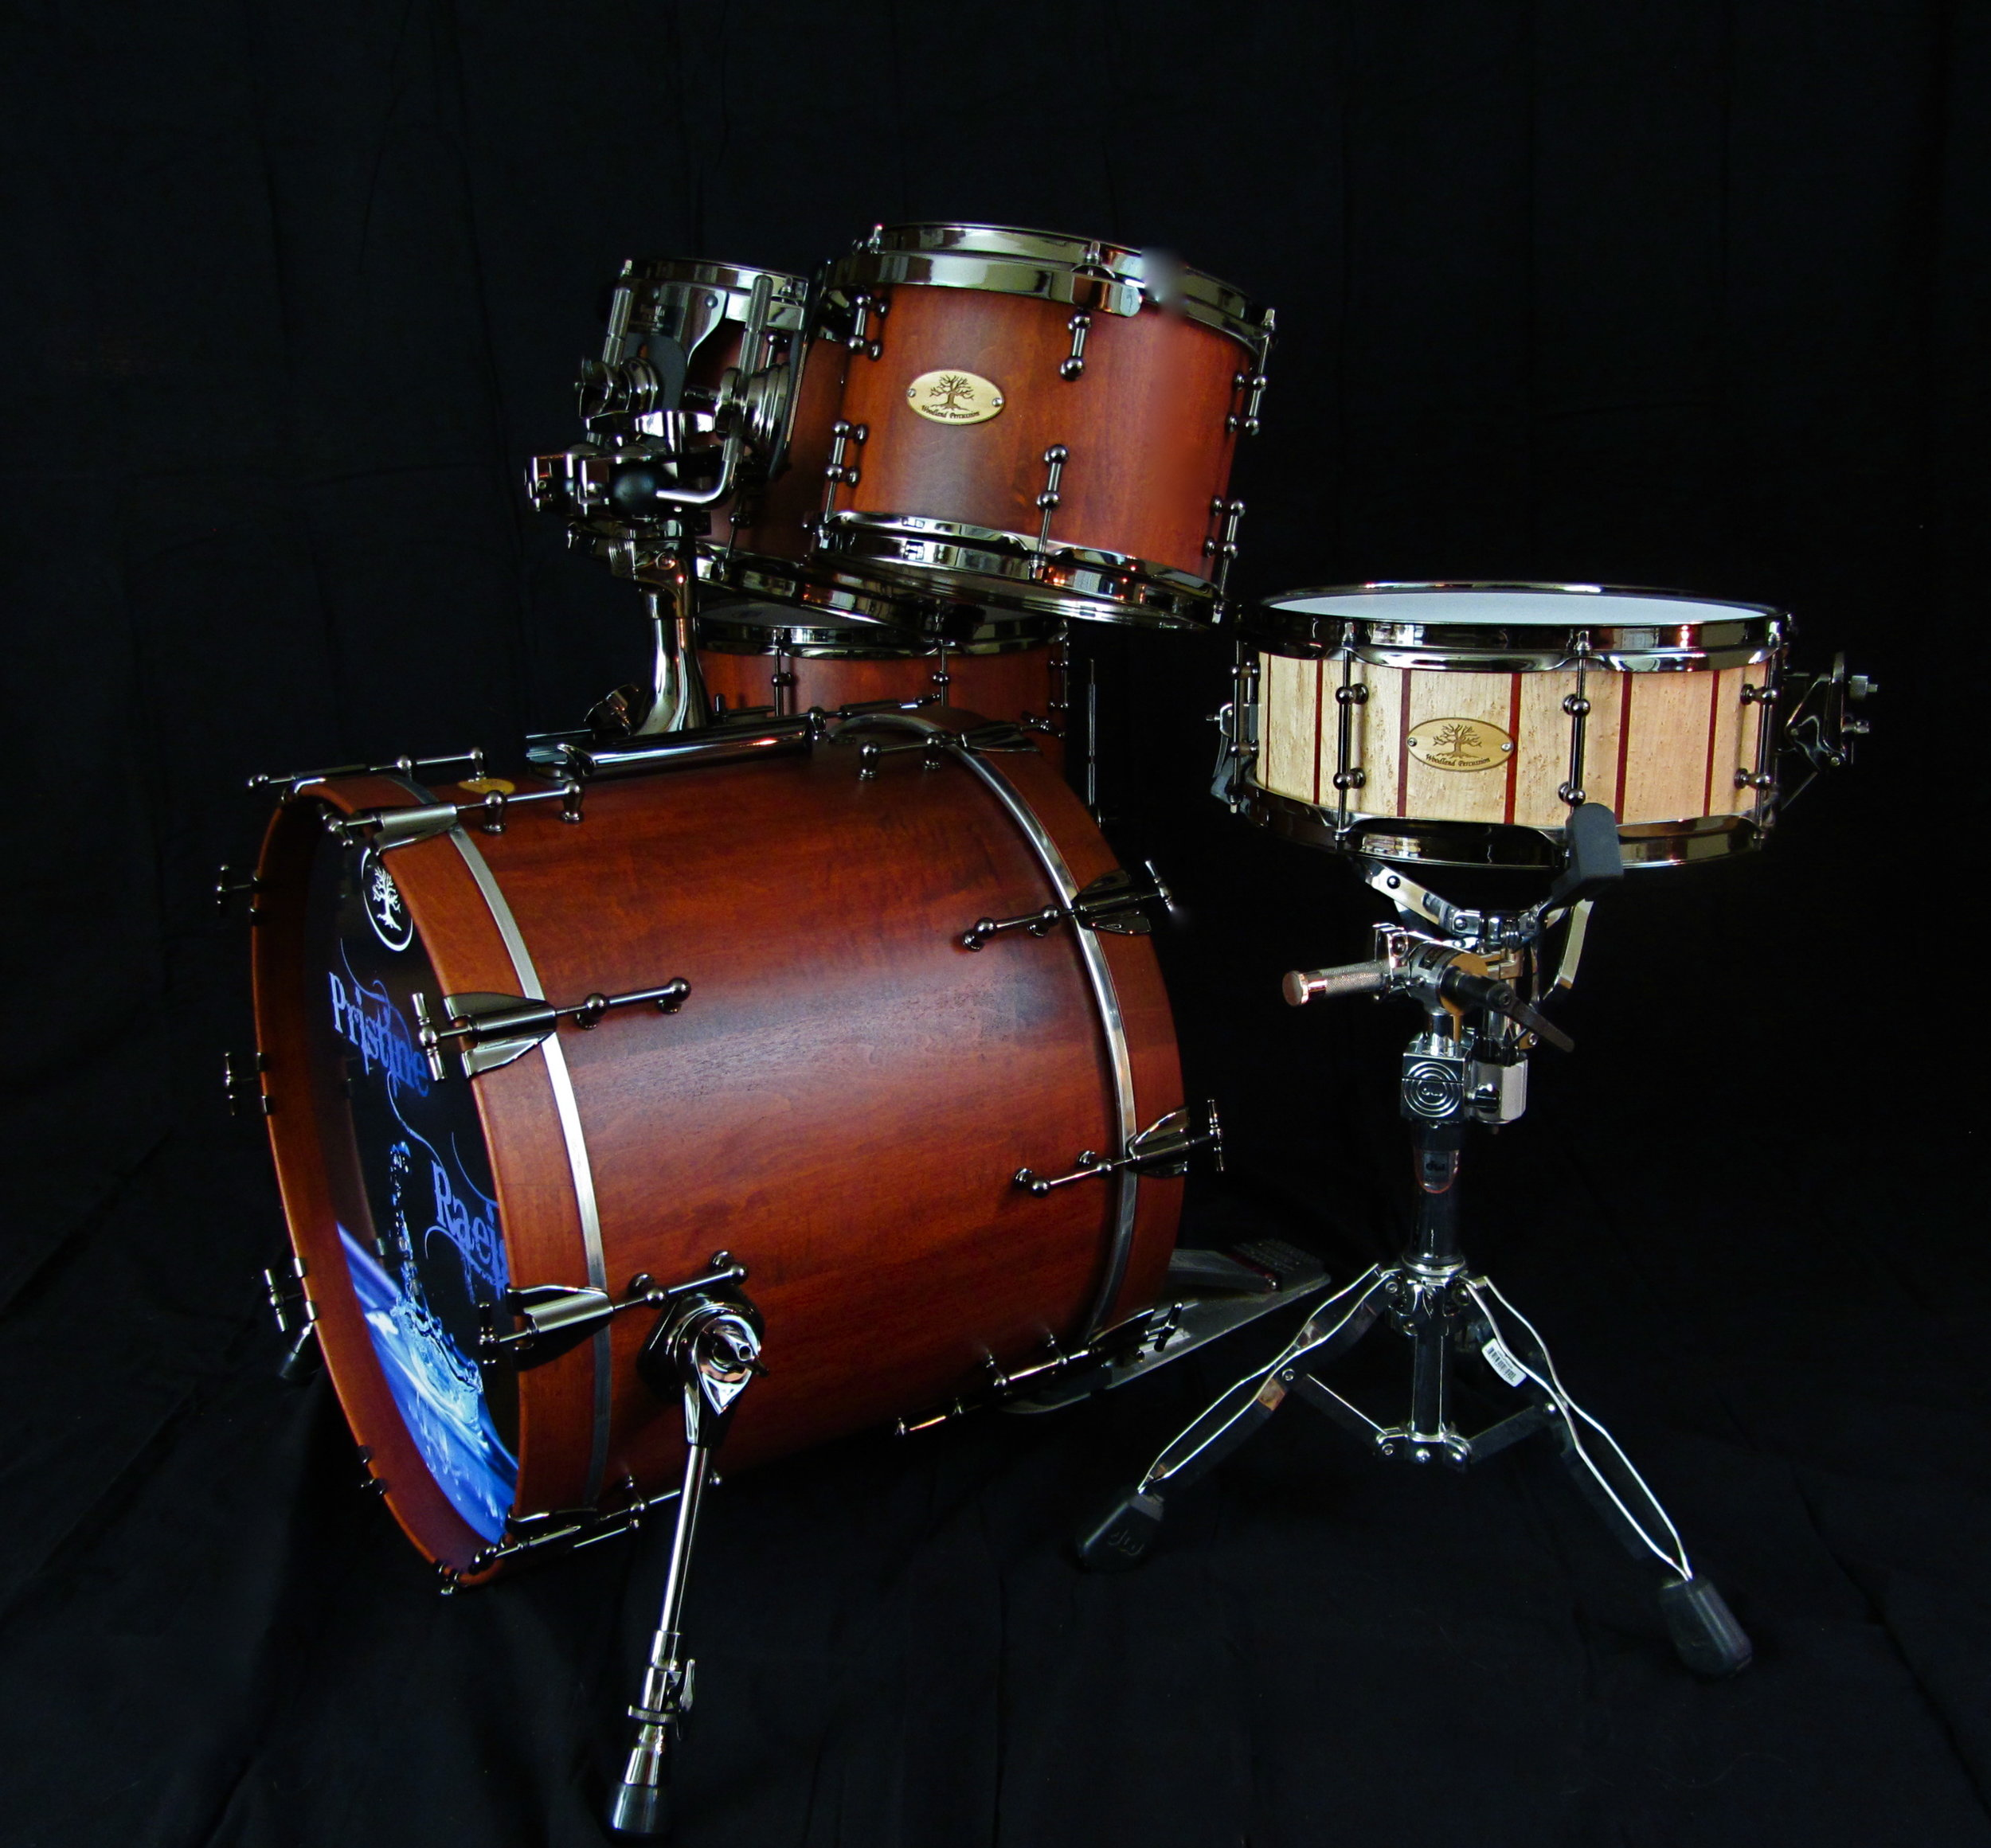 Hard Maple Kit   Weathered Cherry Stain with Black Chrome Hardware  20x16, 14x13, 12x8, 10x7  13x5 Birdseye Maple Snare with Padauk accent stripes.